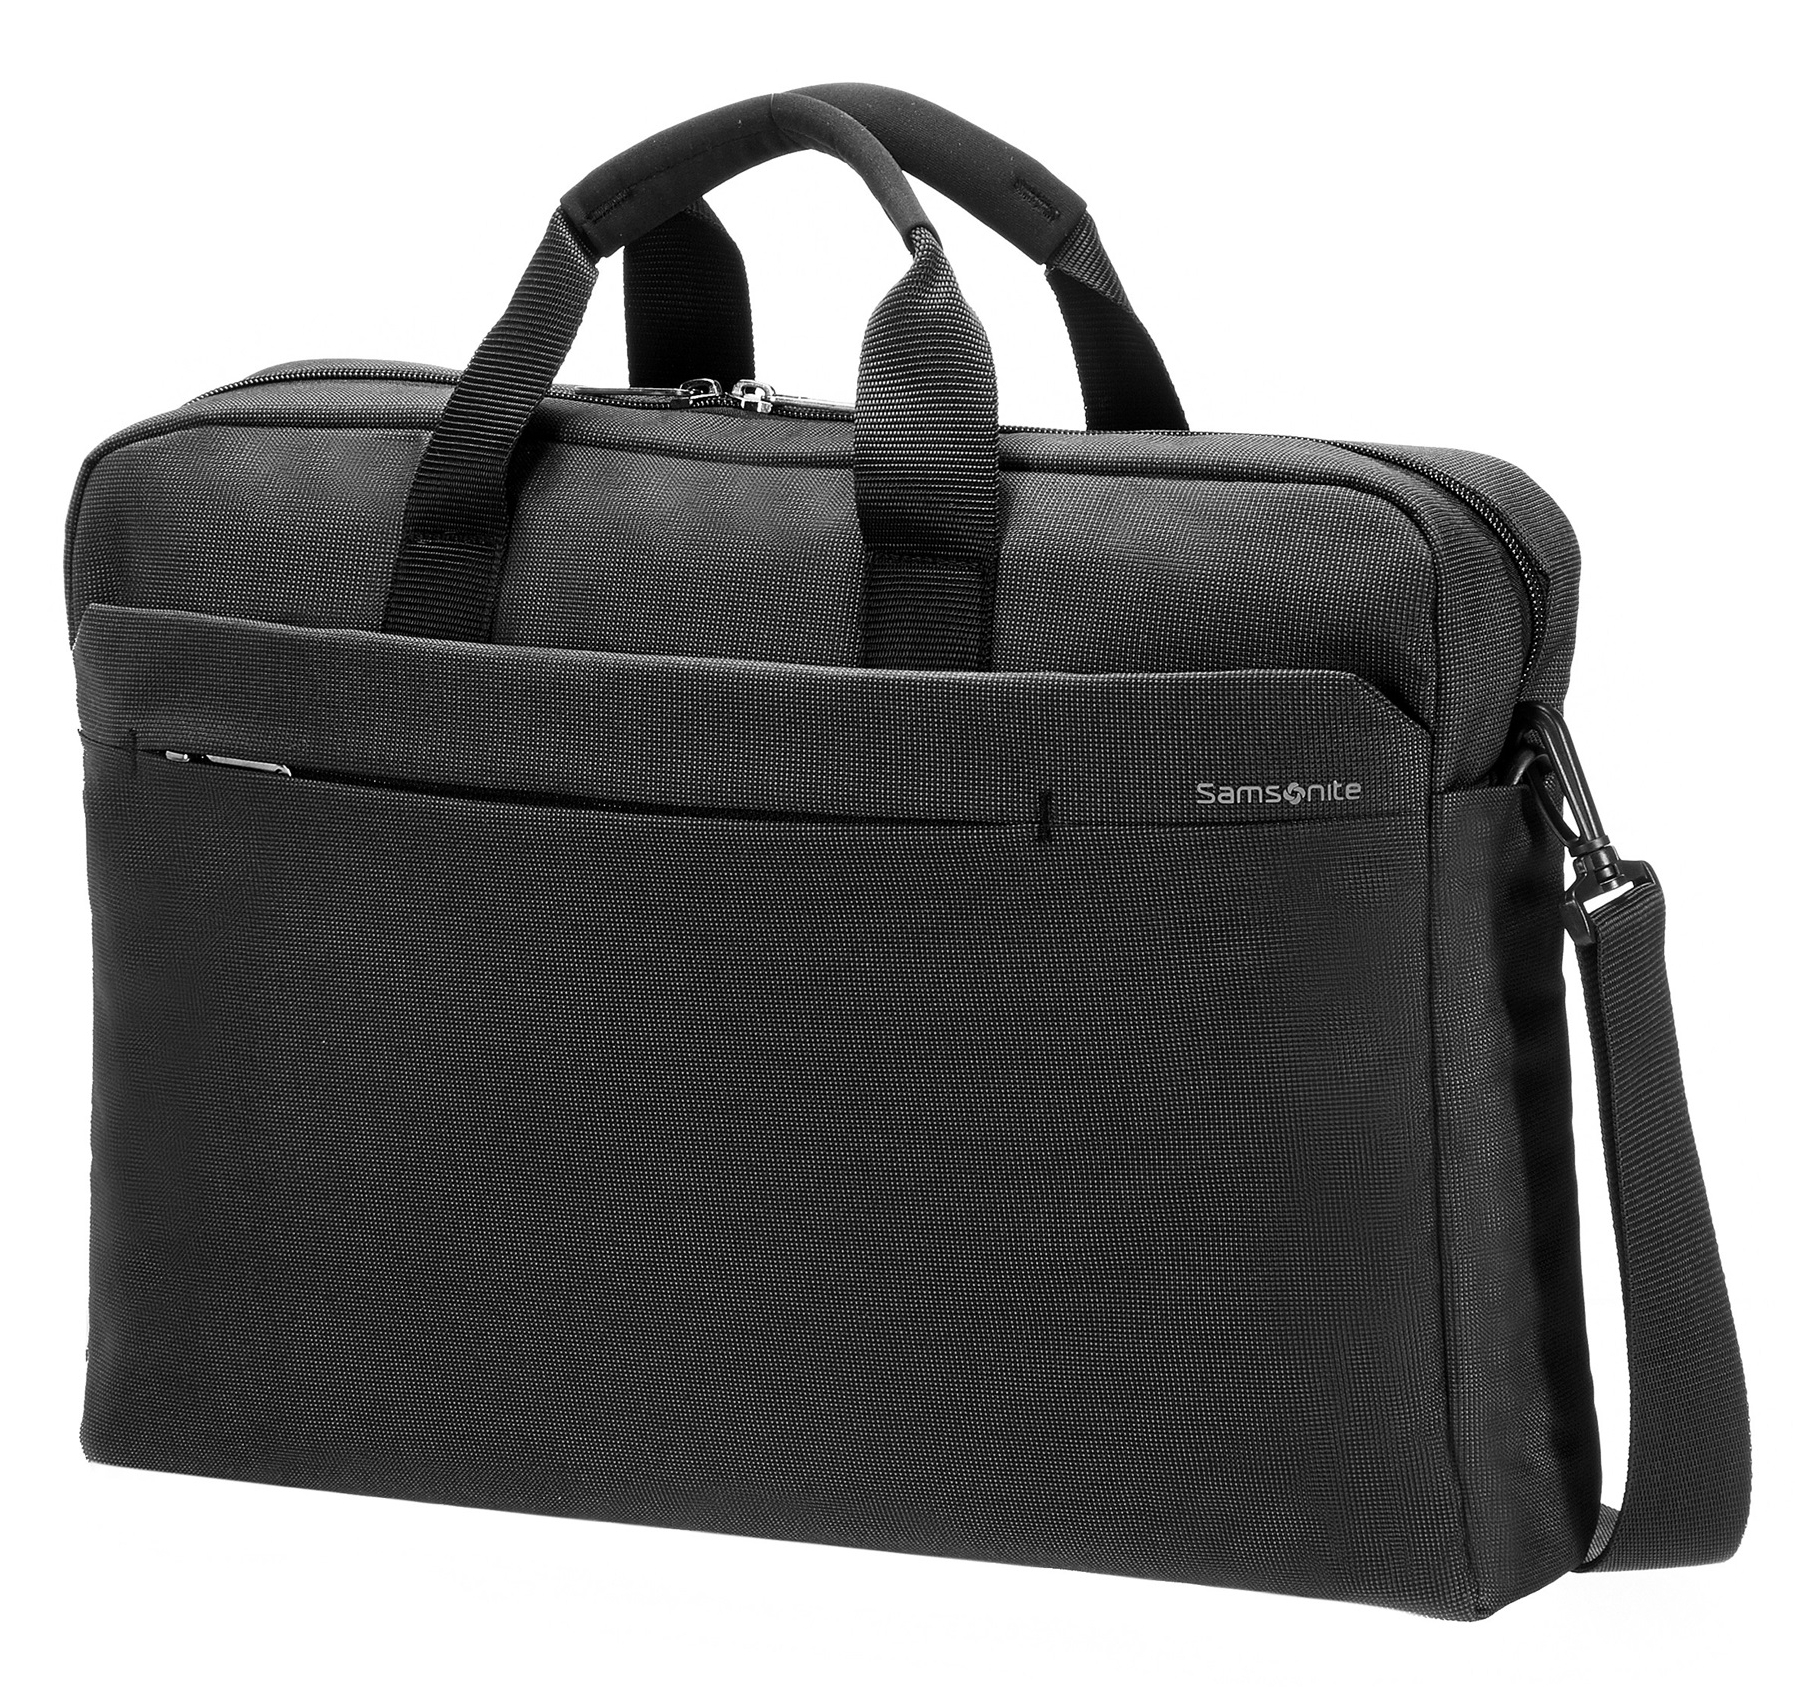 SAMSONITE - BORSE NOTEBOOK - 5414847367700